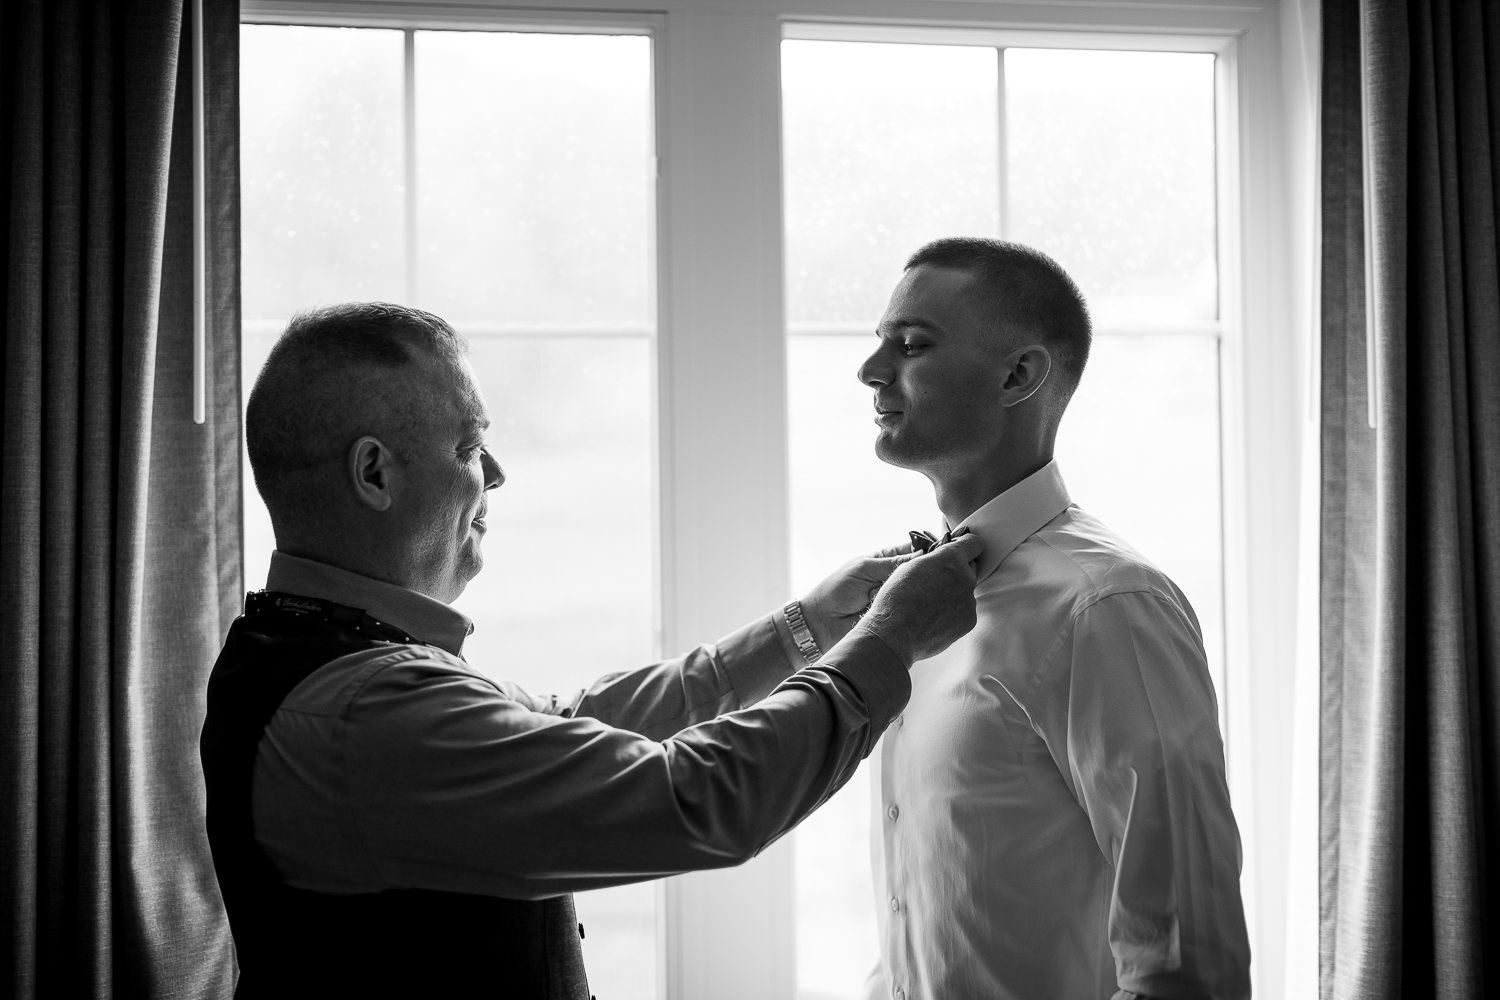 The groom's father adjusts his tie before a Jay Peak Resort wedding in Vermont in a photo by Stina Booth